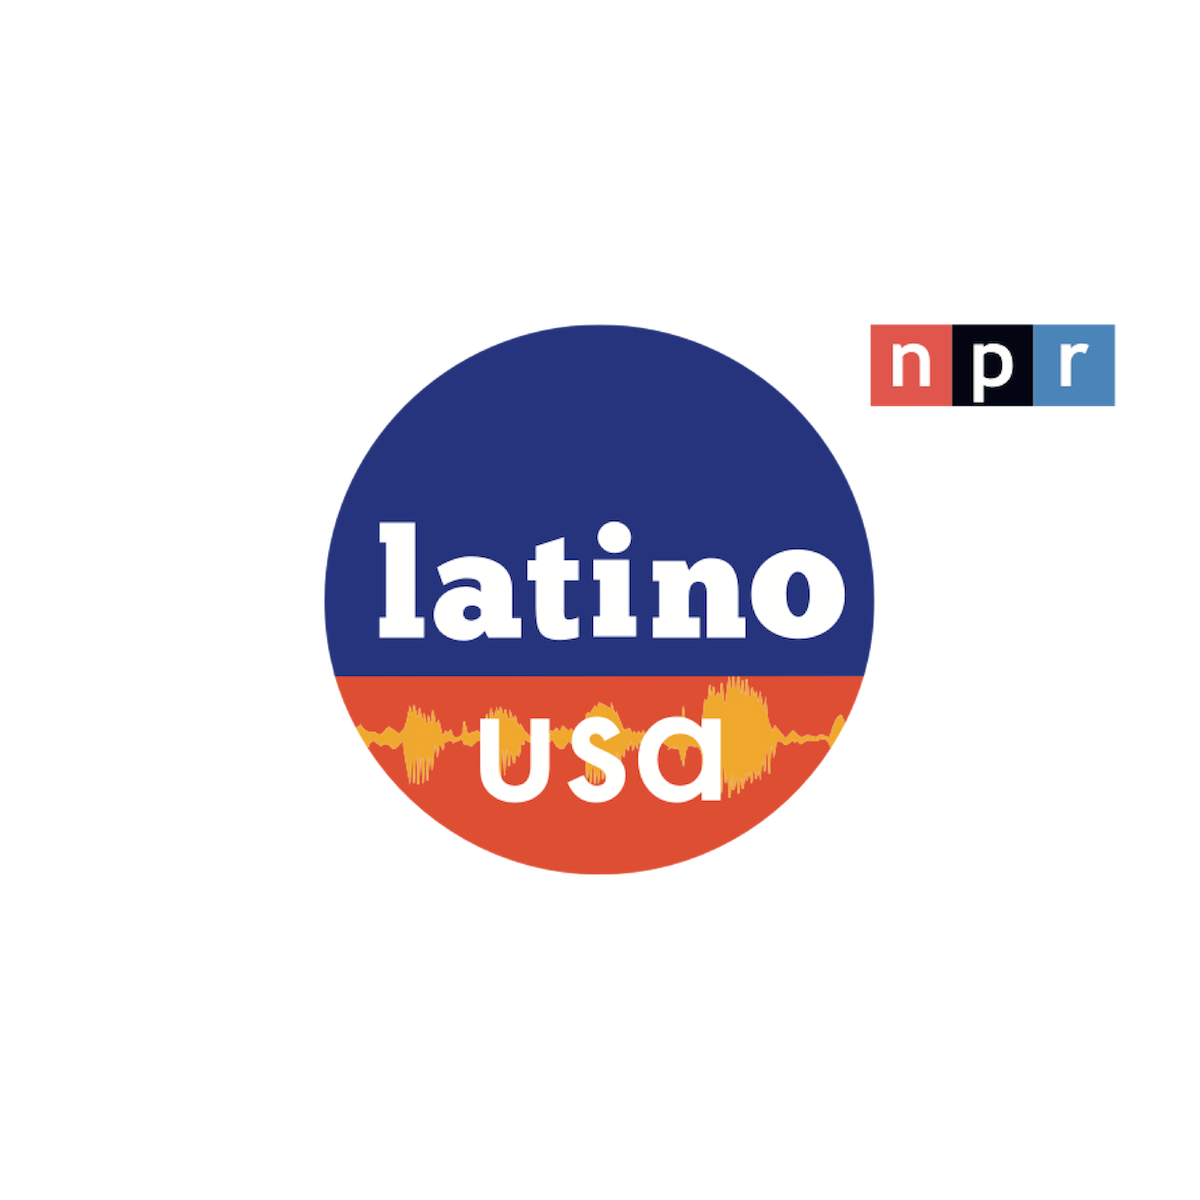 La Llorona As Feminist Icon for NPR's Latino USA -